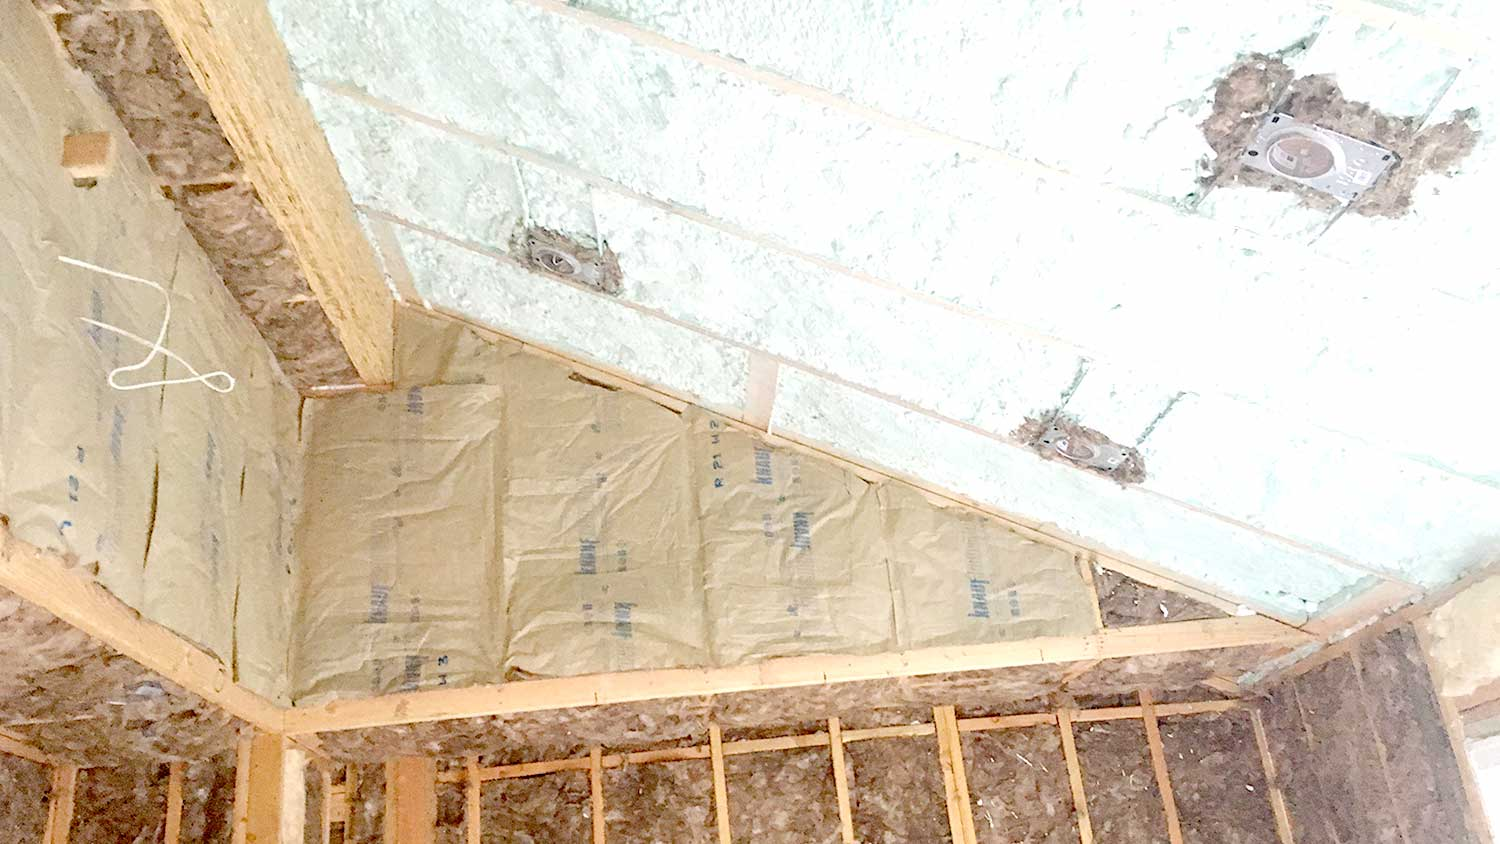 Insulation Solutions - Grass Valley - Sacramento - Spray Foam Insulation & BIBs